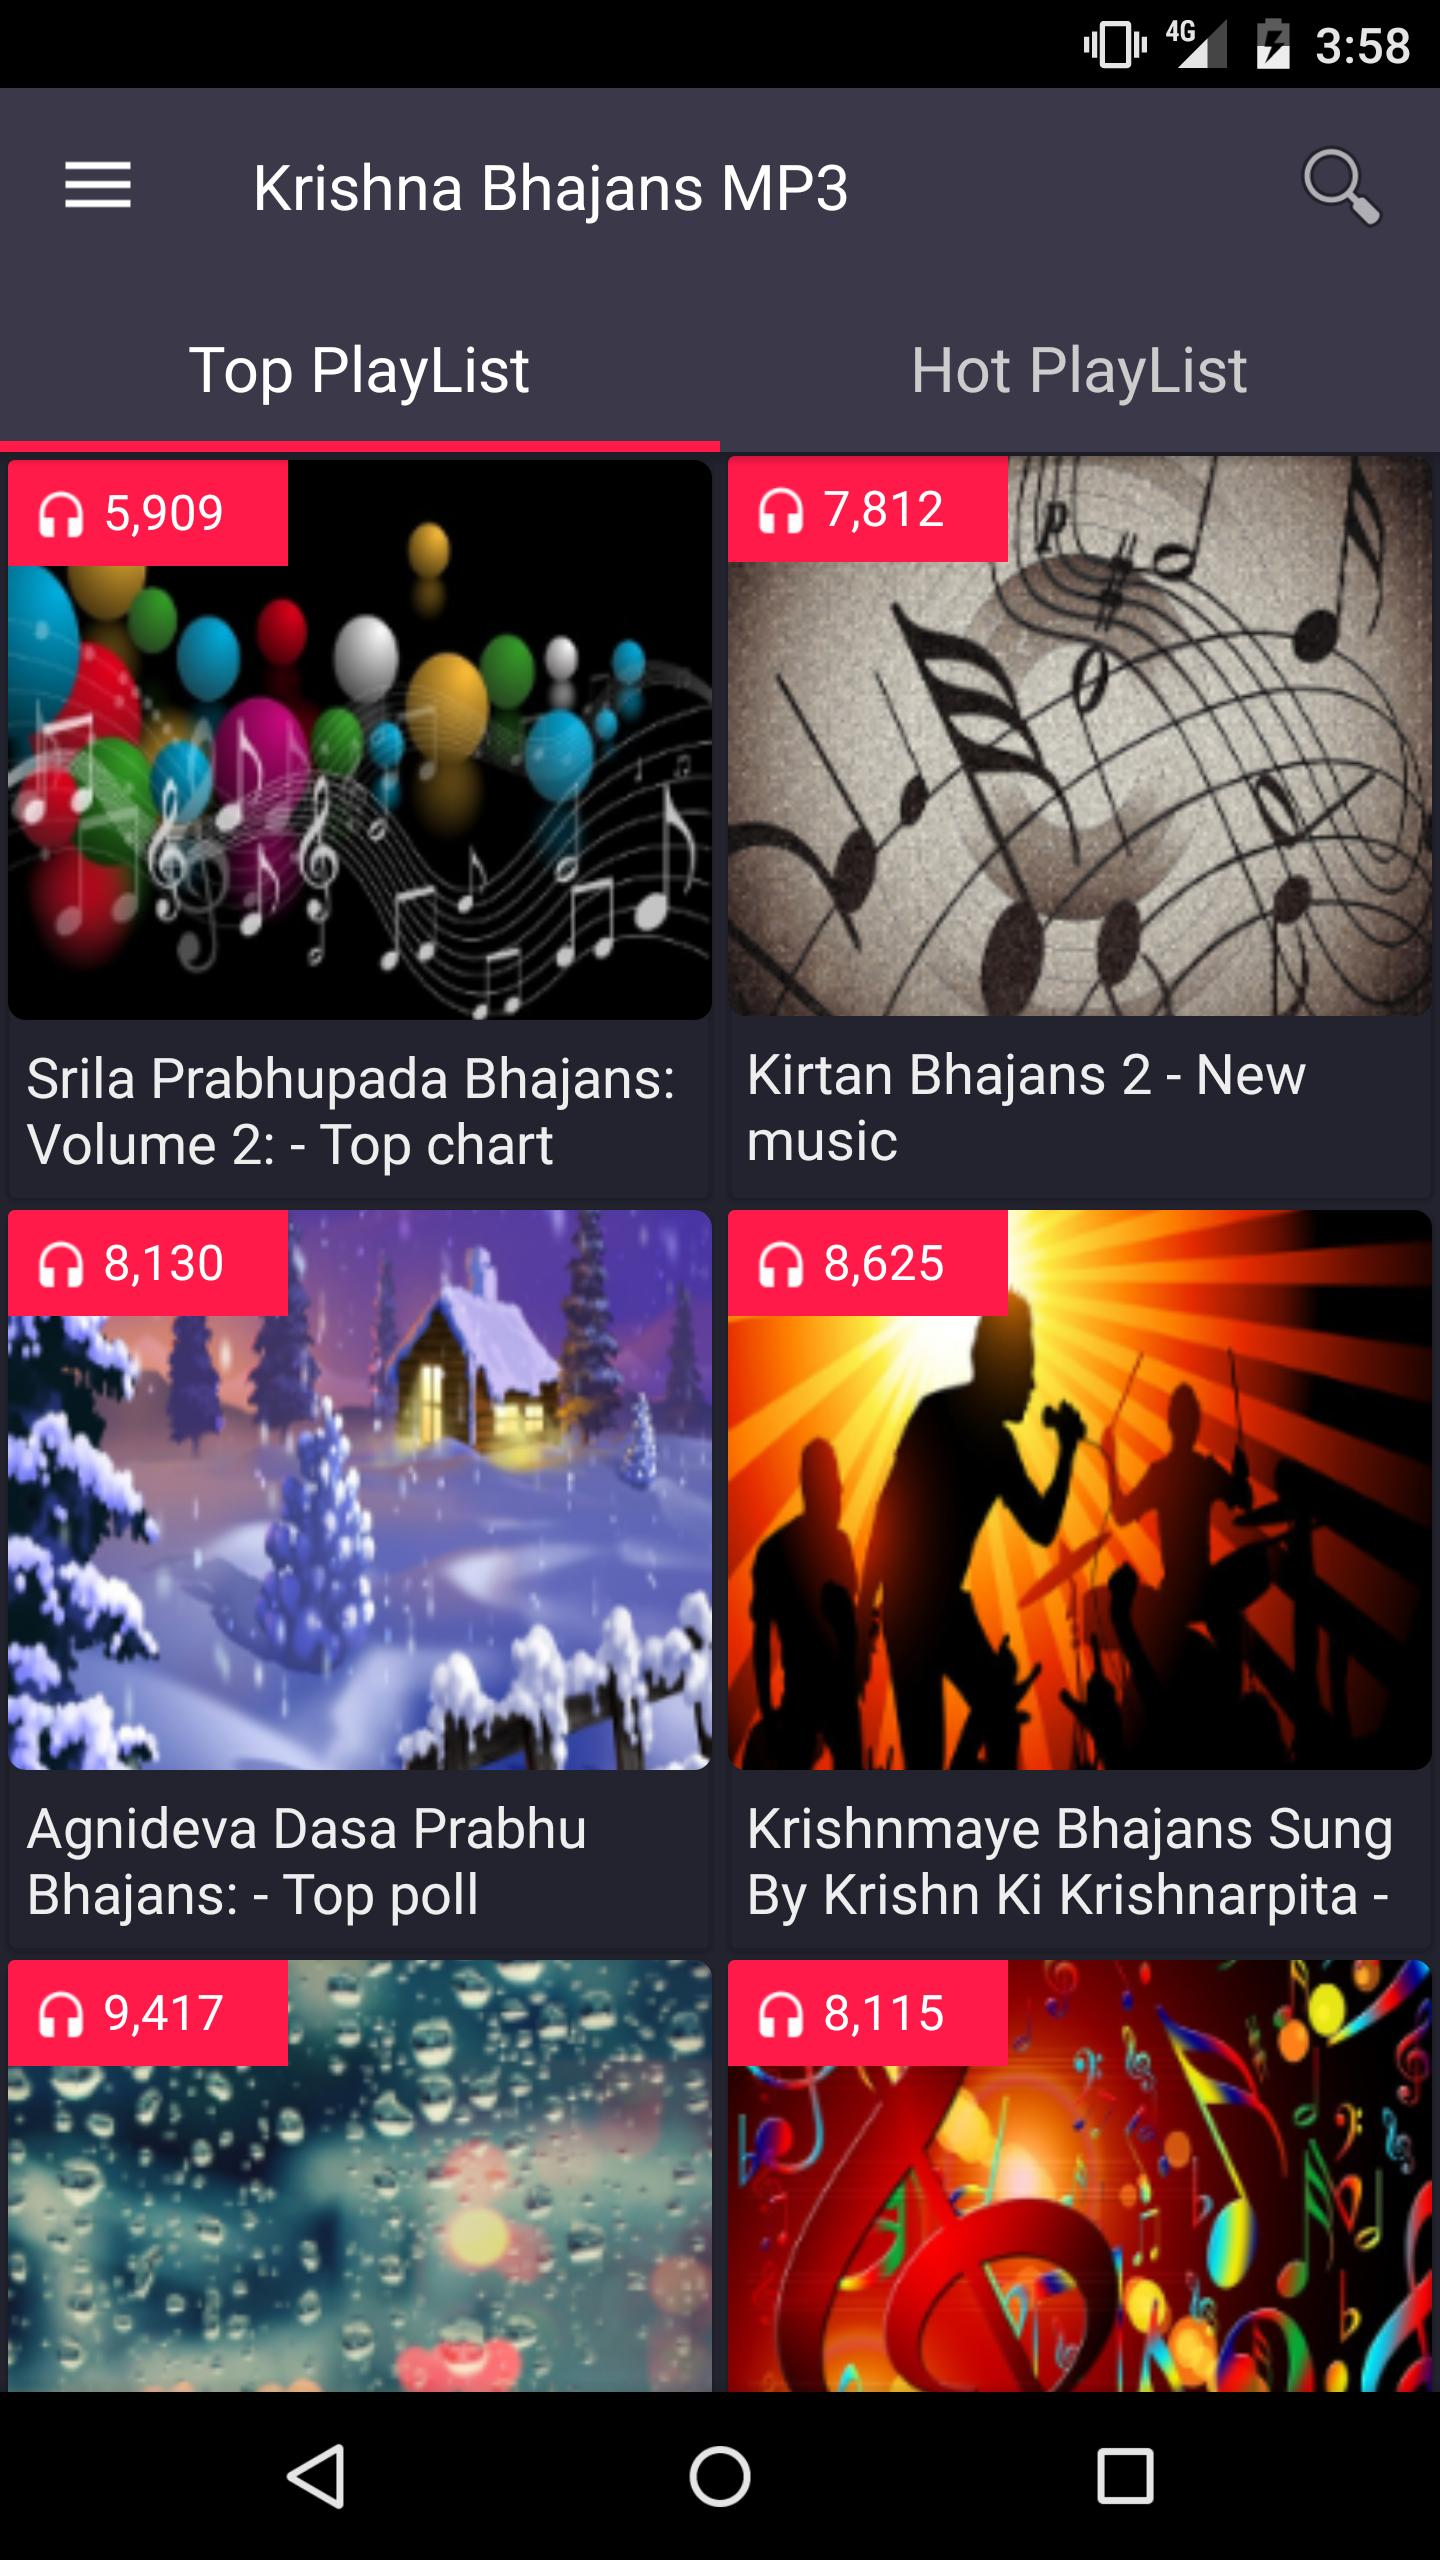 Krishna Bhajans MP3 for Android - APK Download